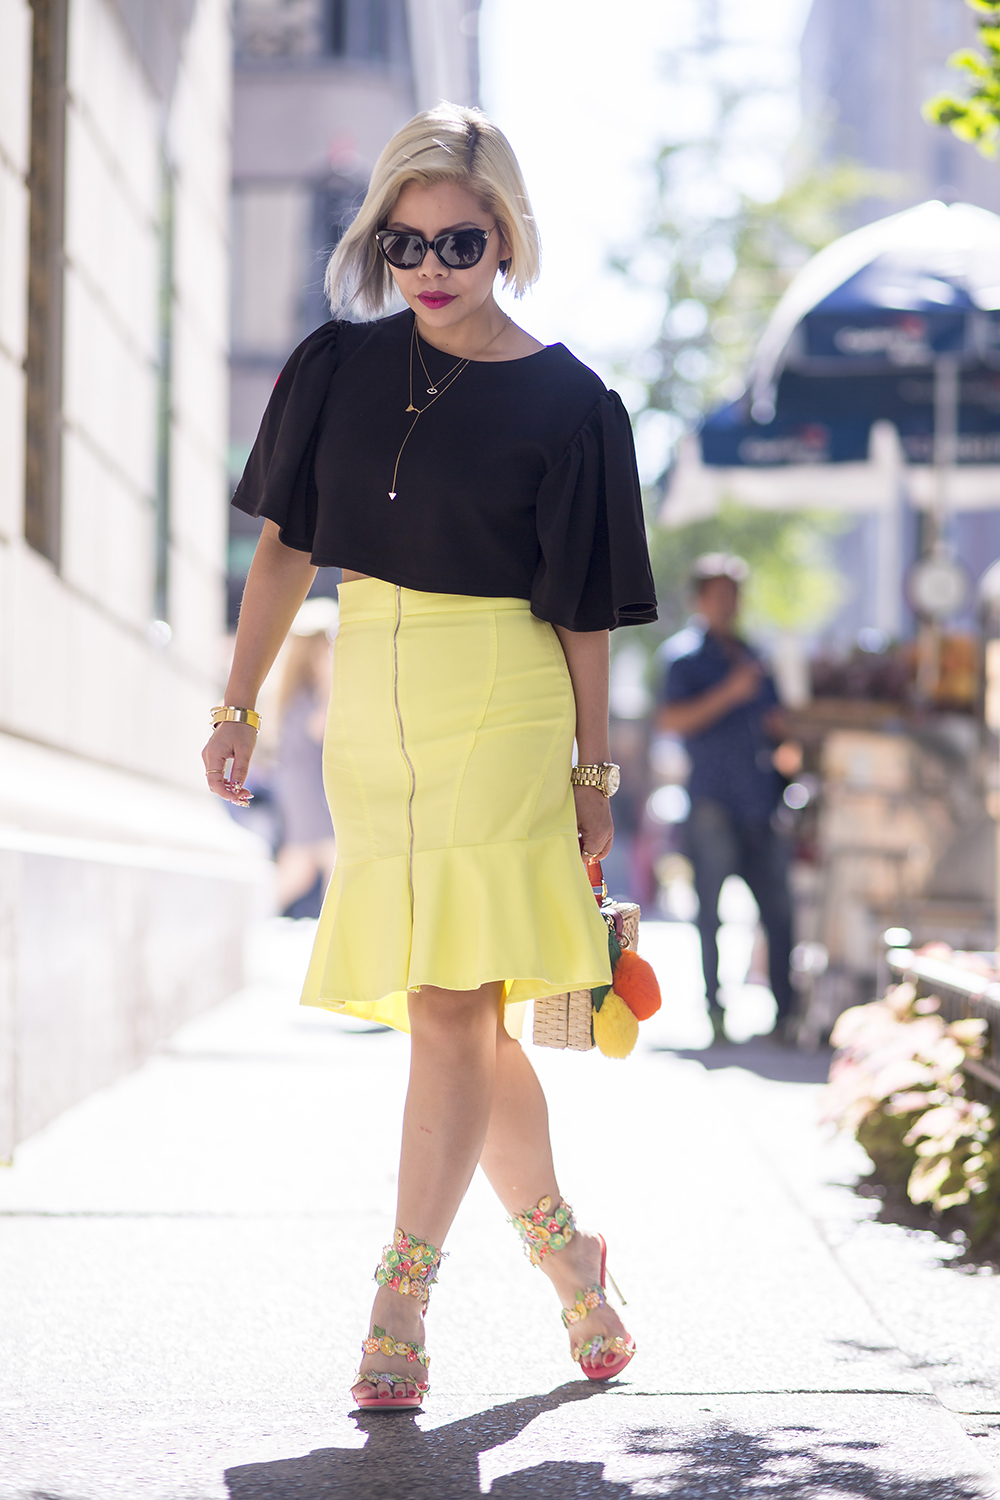 New York Fashion Week 2015- Blogger streetstyle- Crystal Phuong